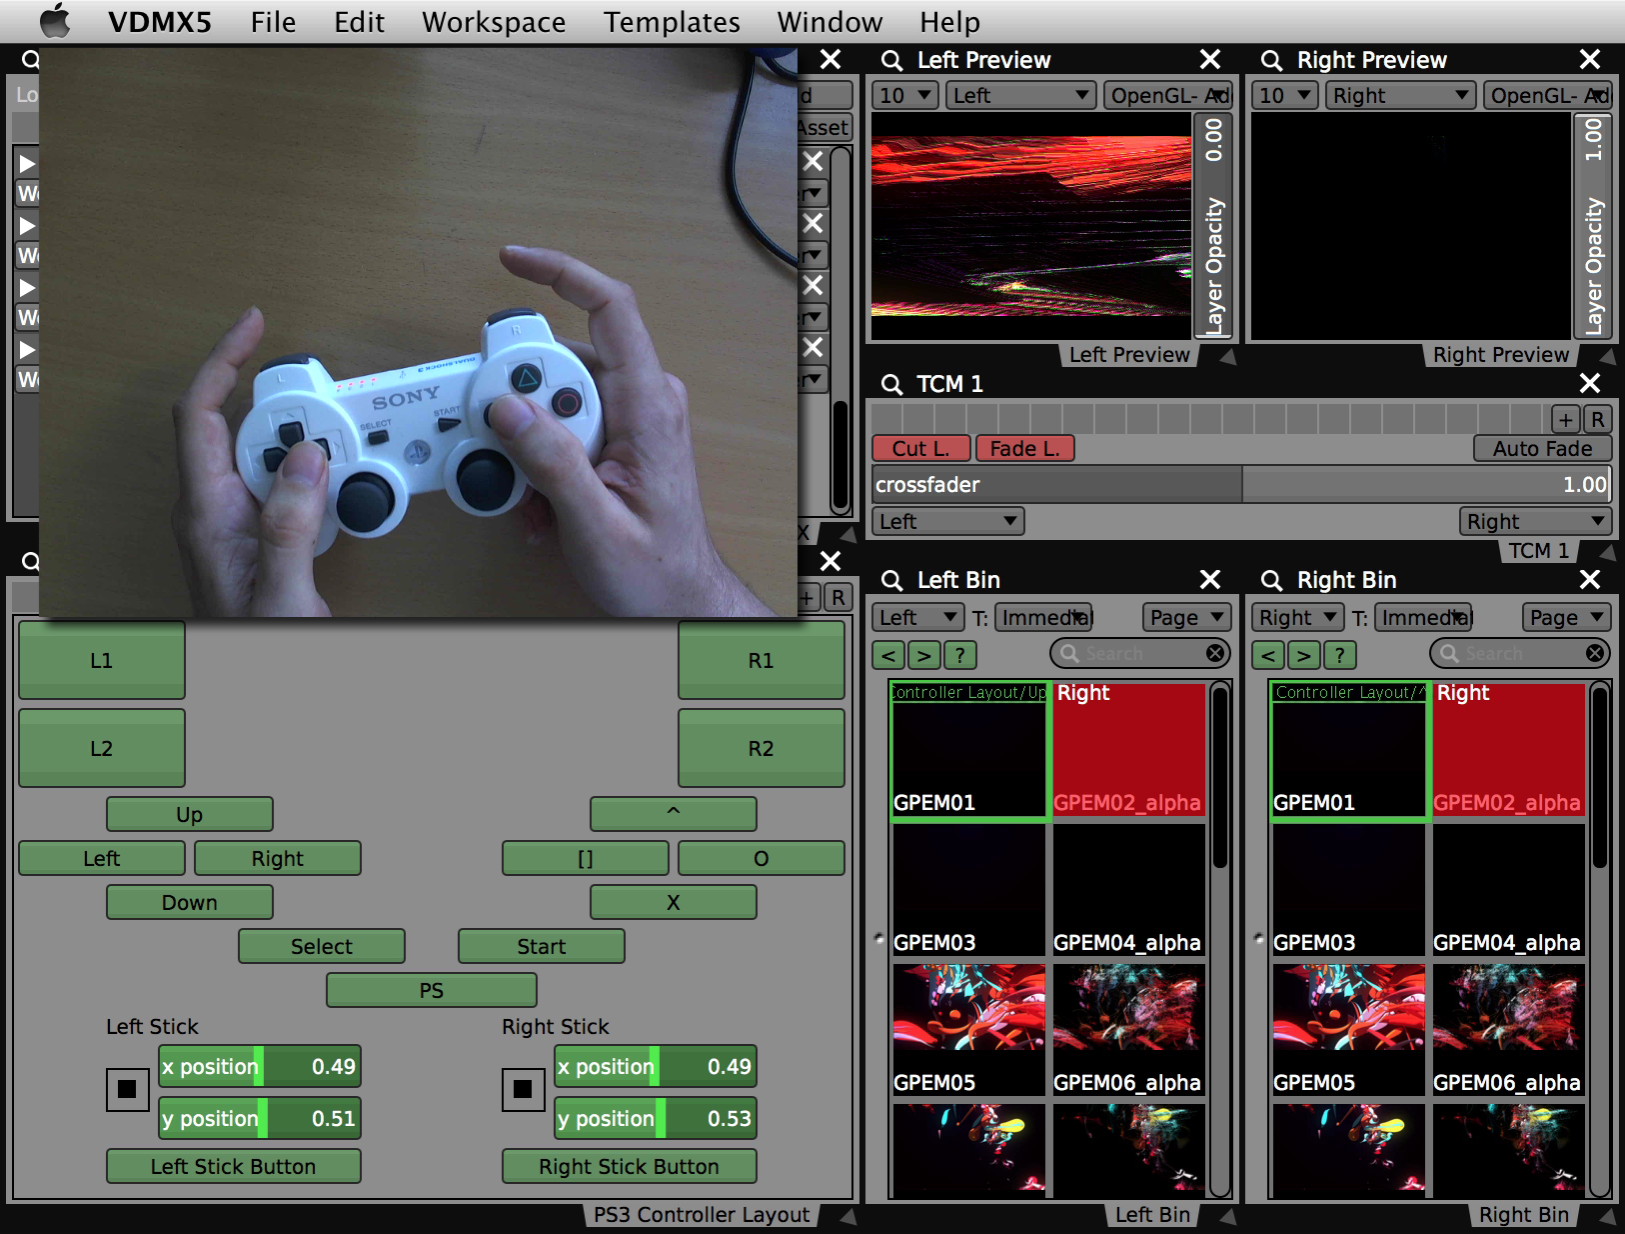 Using a PS3 based HID Controller with VDMX